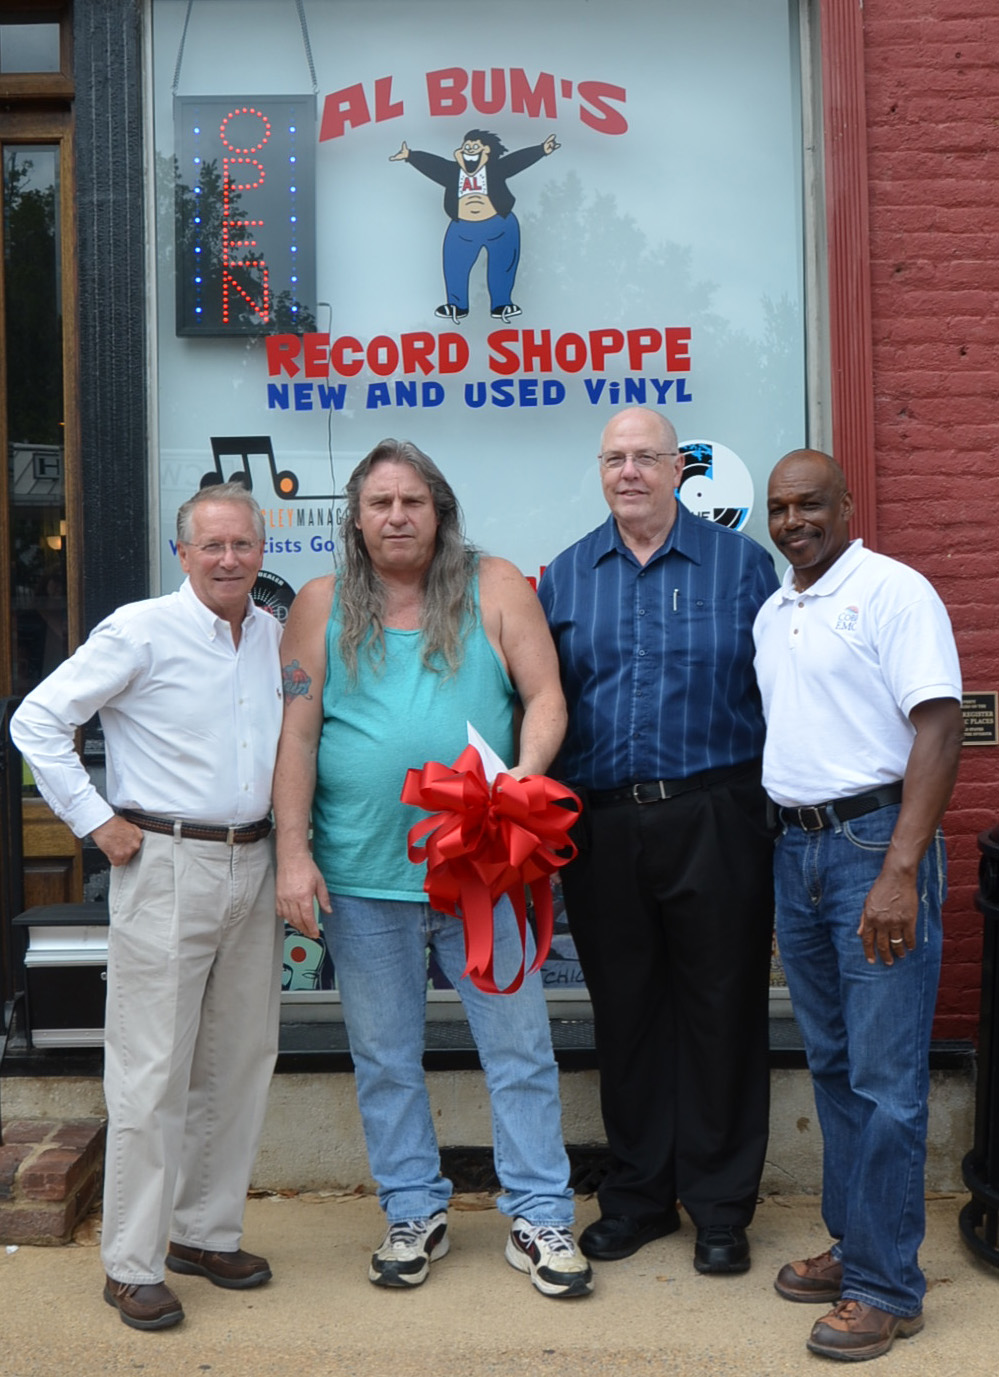 Ribbon Cutting for Al Bum's Record Shoppe photo 4